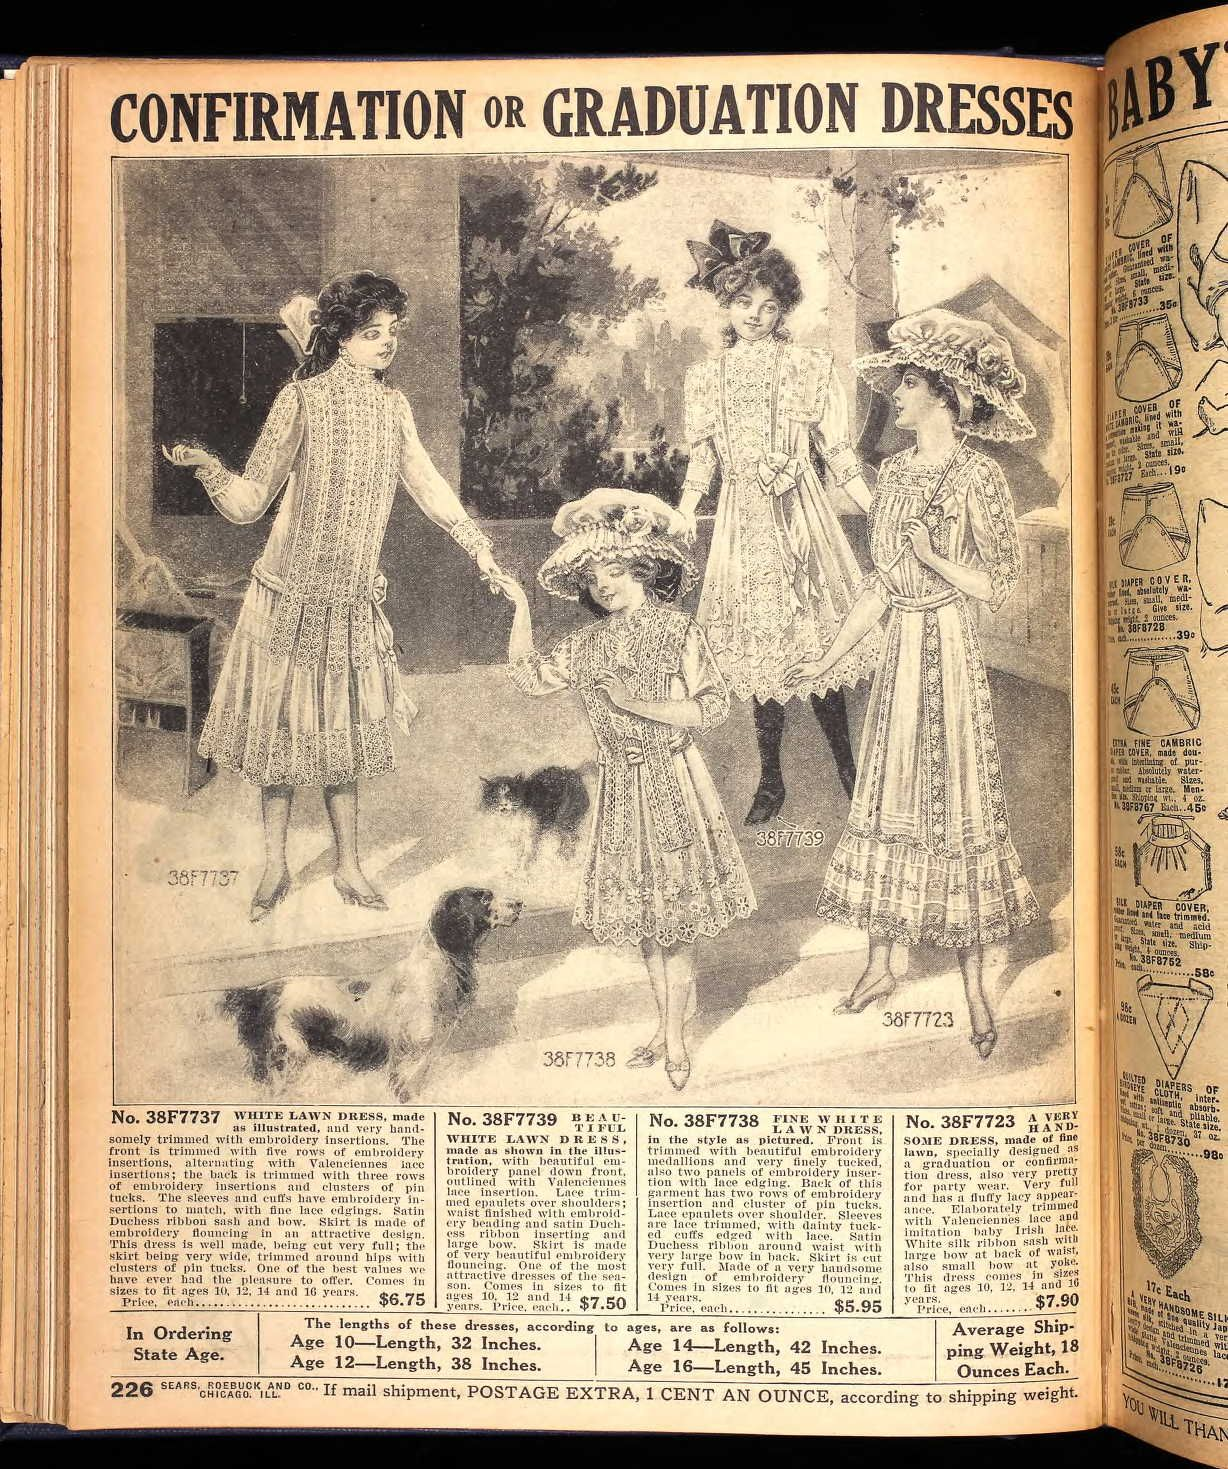 1911 Sears confirmation and graduation dresses for girls